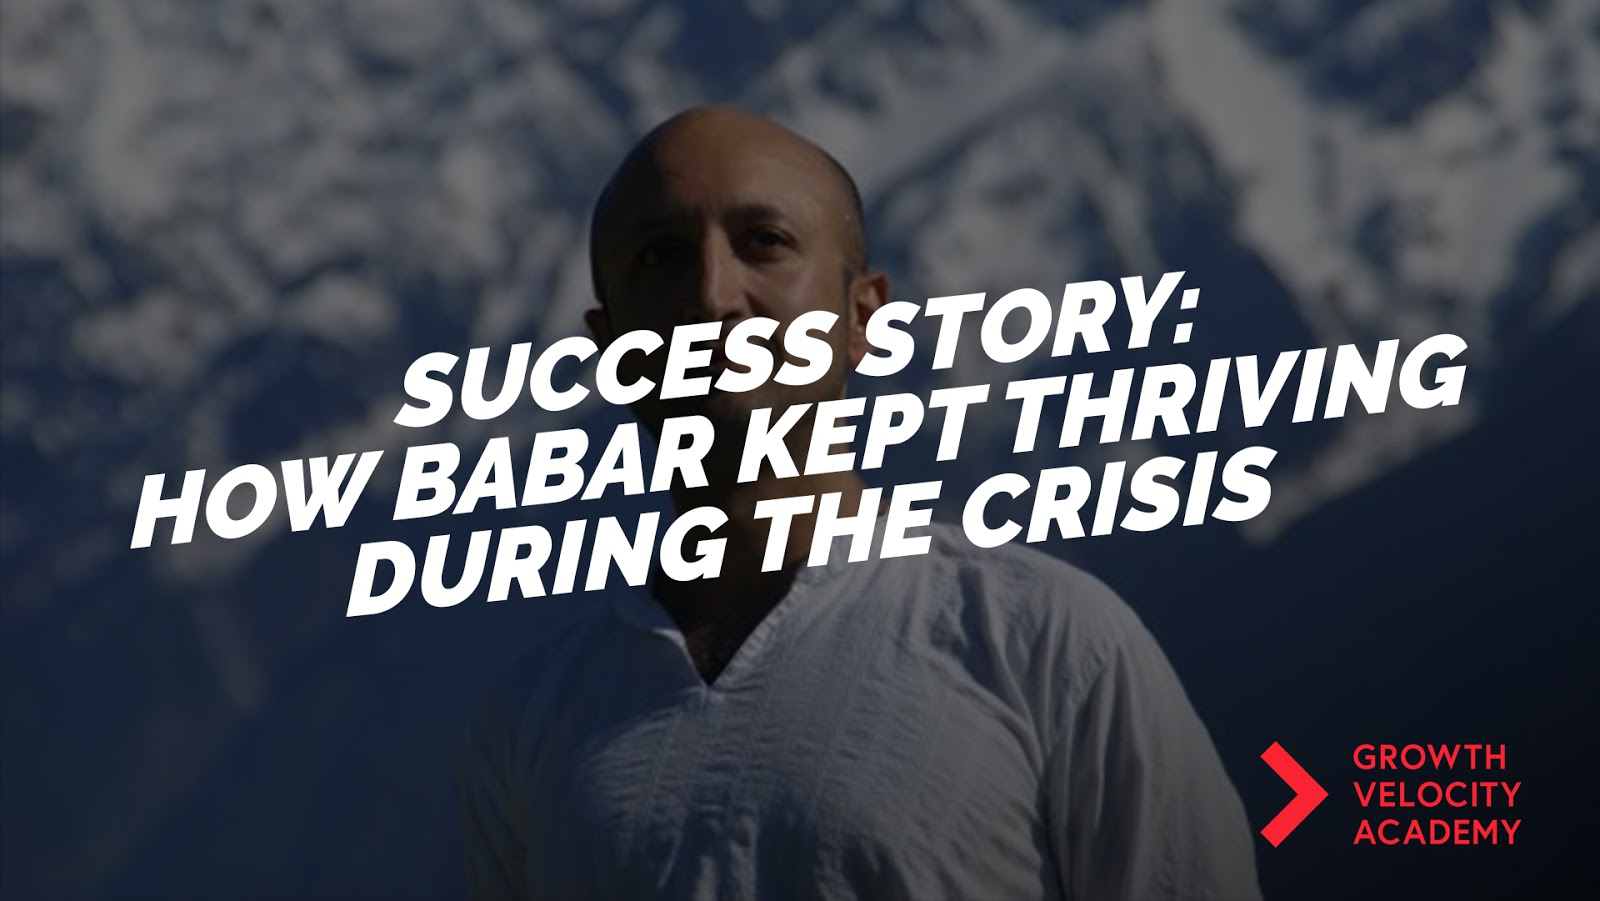 How Babar Kept Thriving During the Crisis